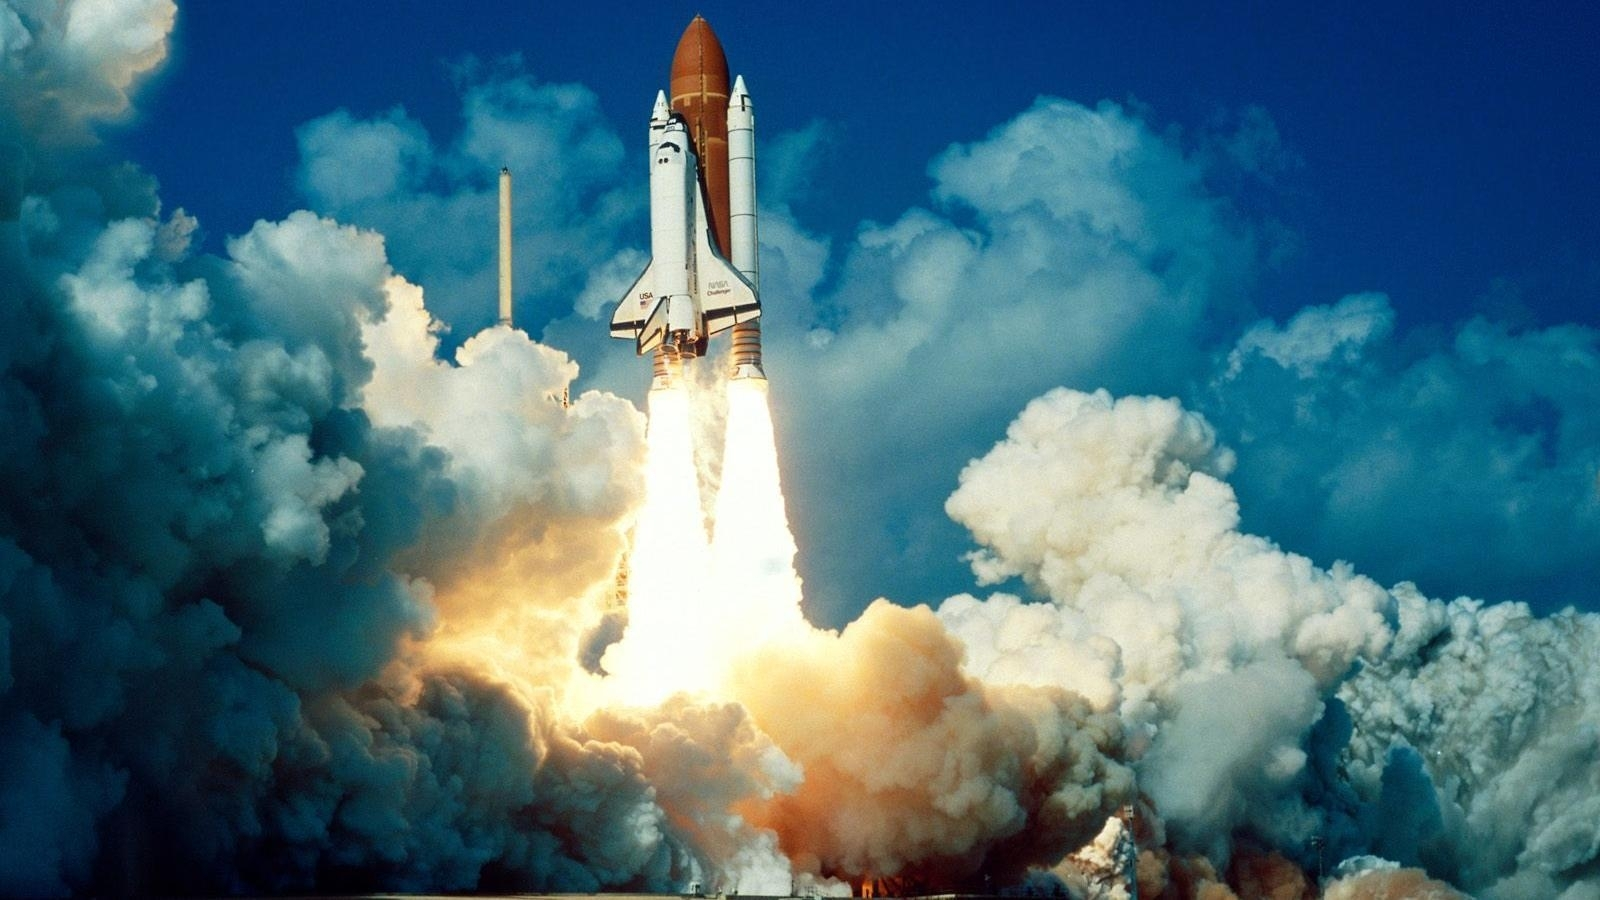 space shuttle desktop wallpapers - wallpaper cave